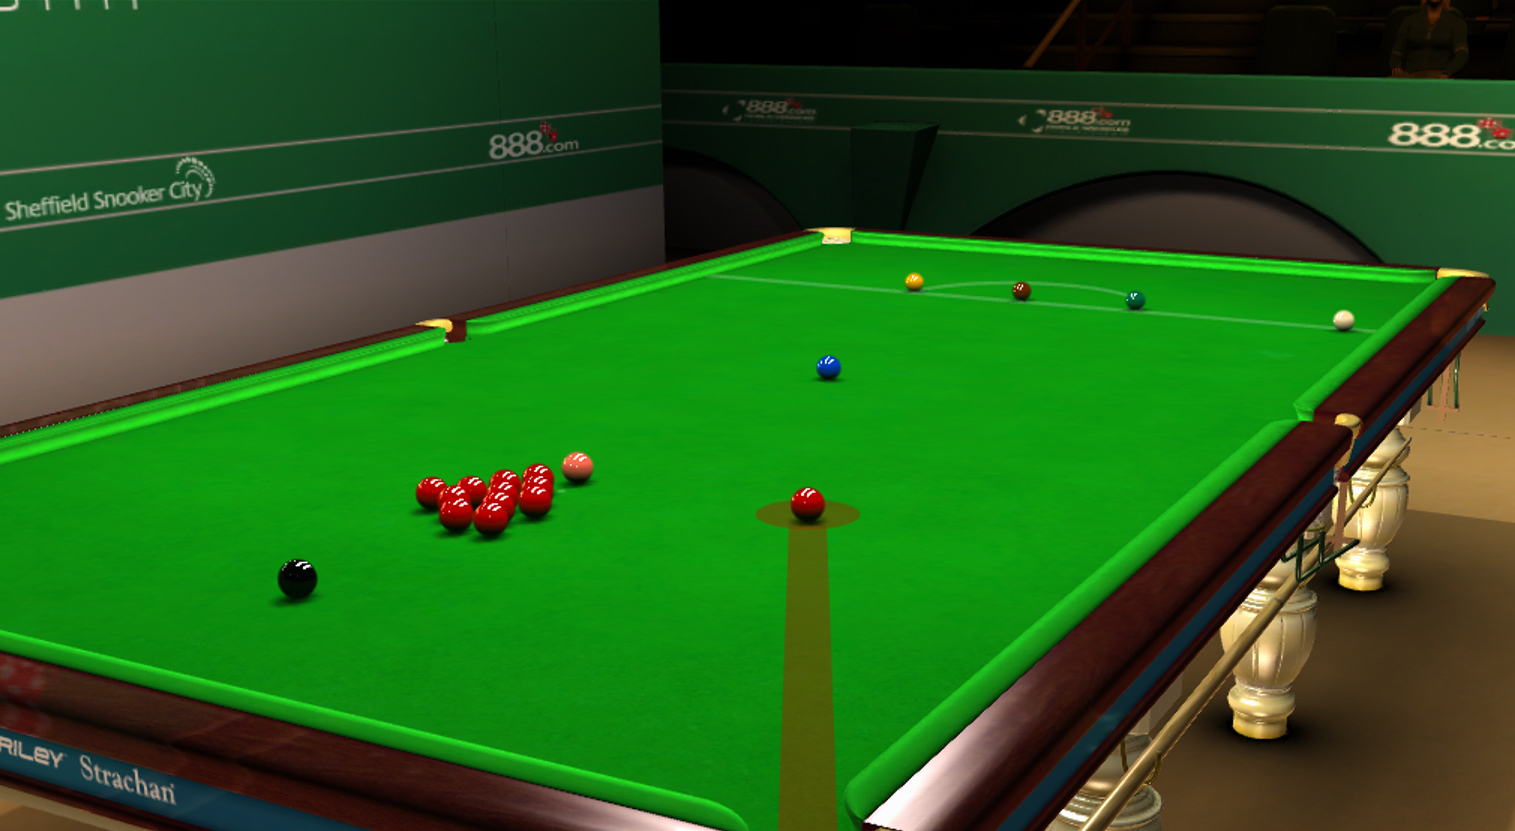 WSC Real 2009 World Snooker is indeed a good game that has mostly all